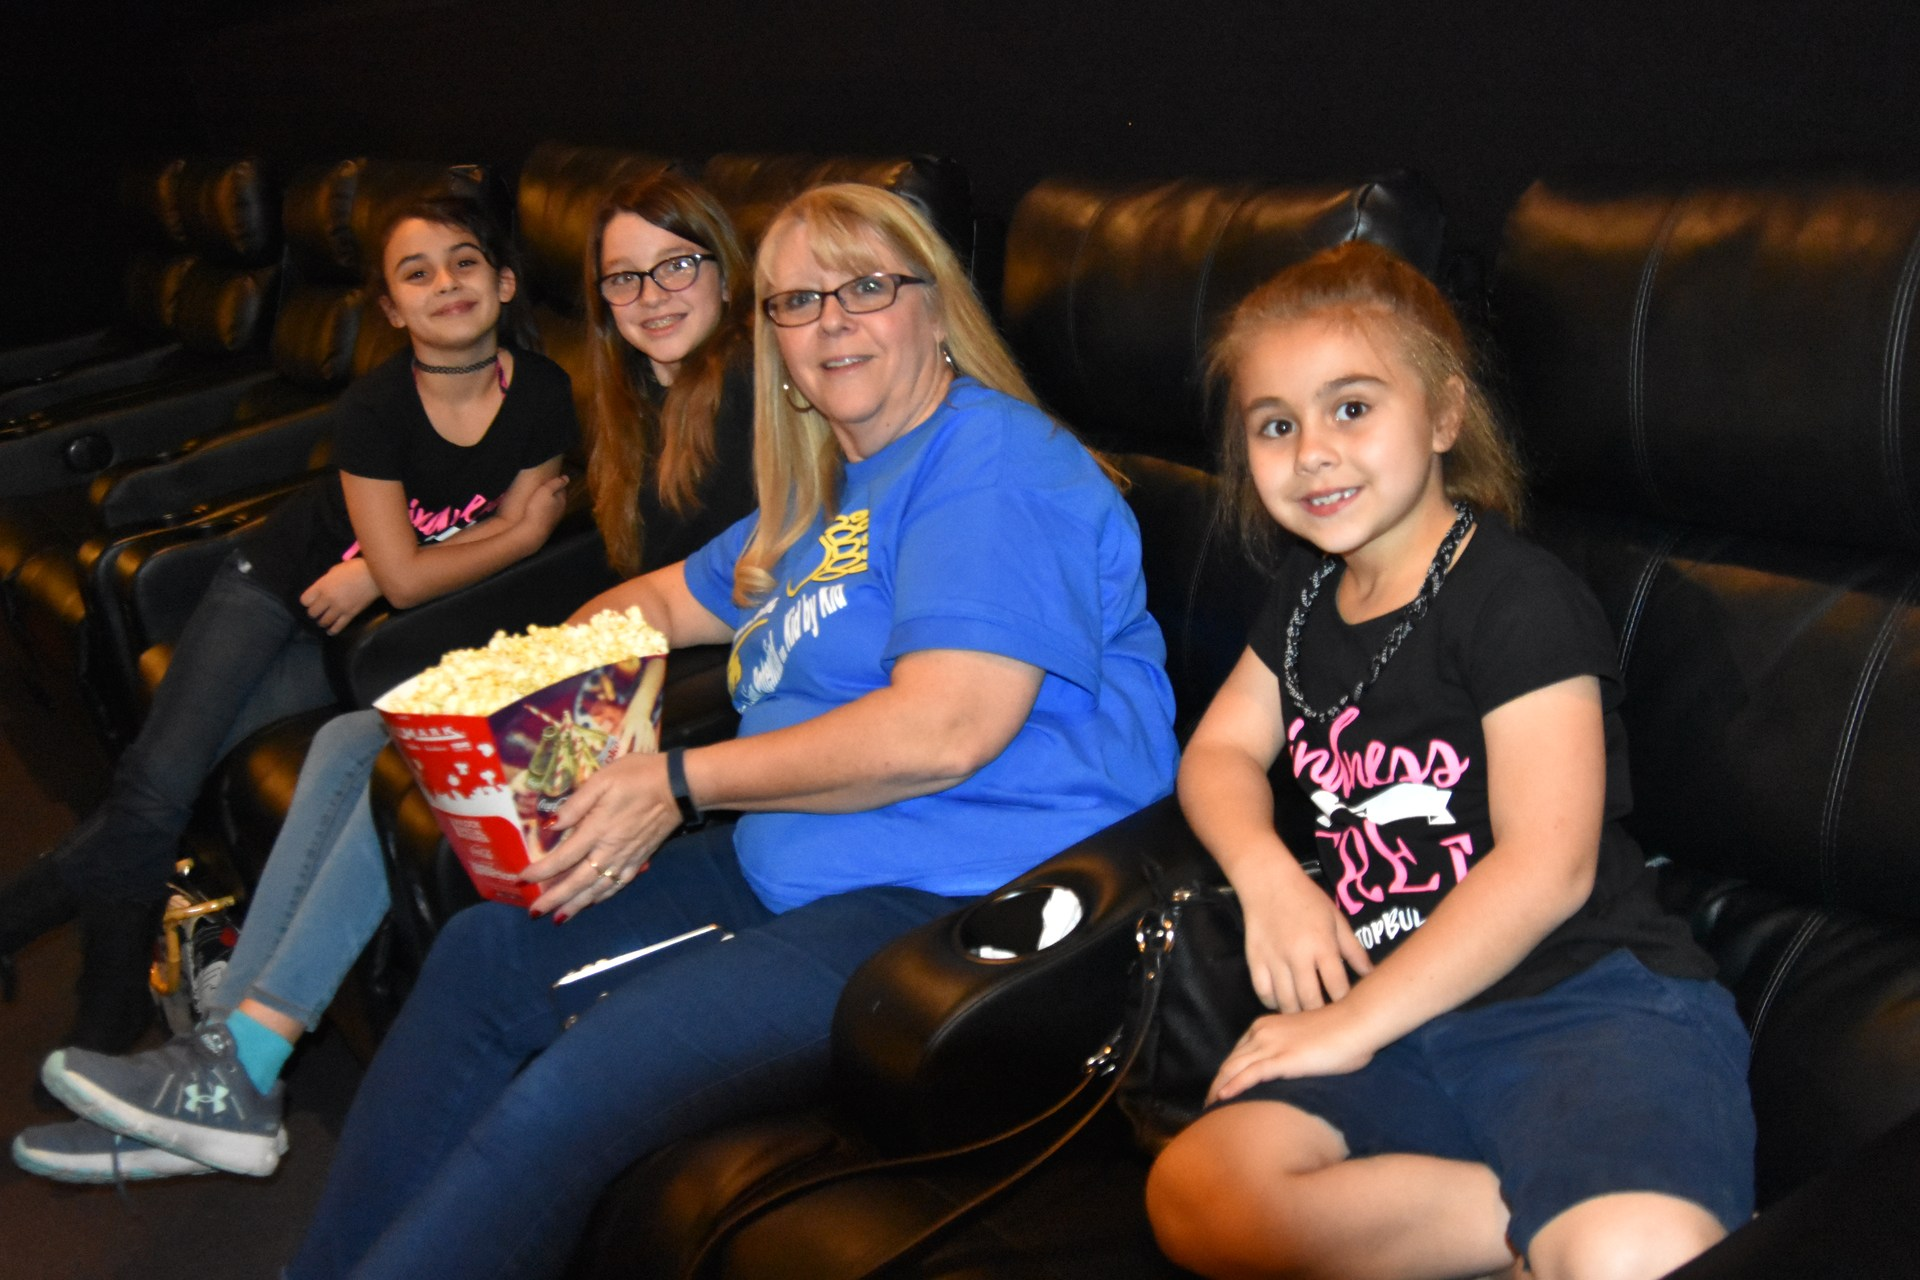 School Board Member Melissa Brown and her family attend the Wonder Movie Night.